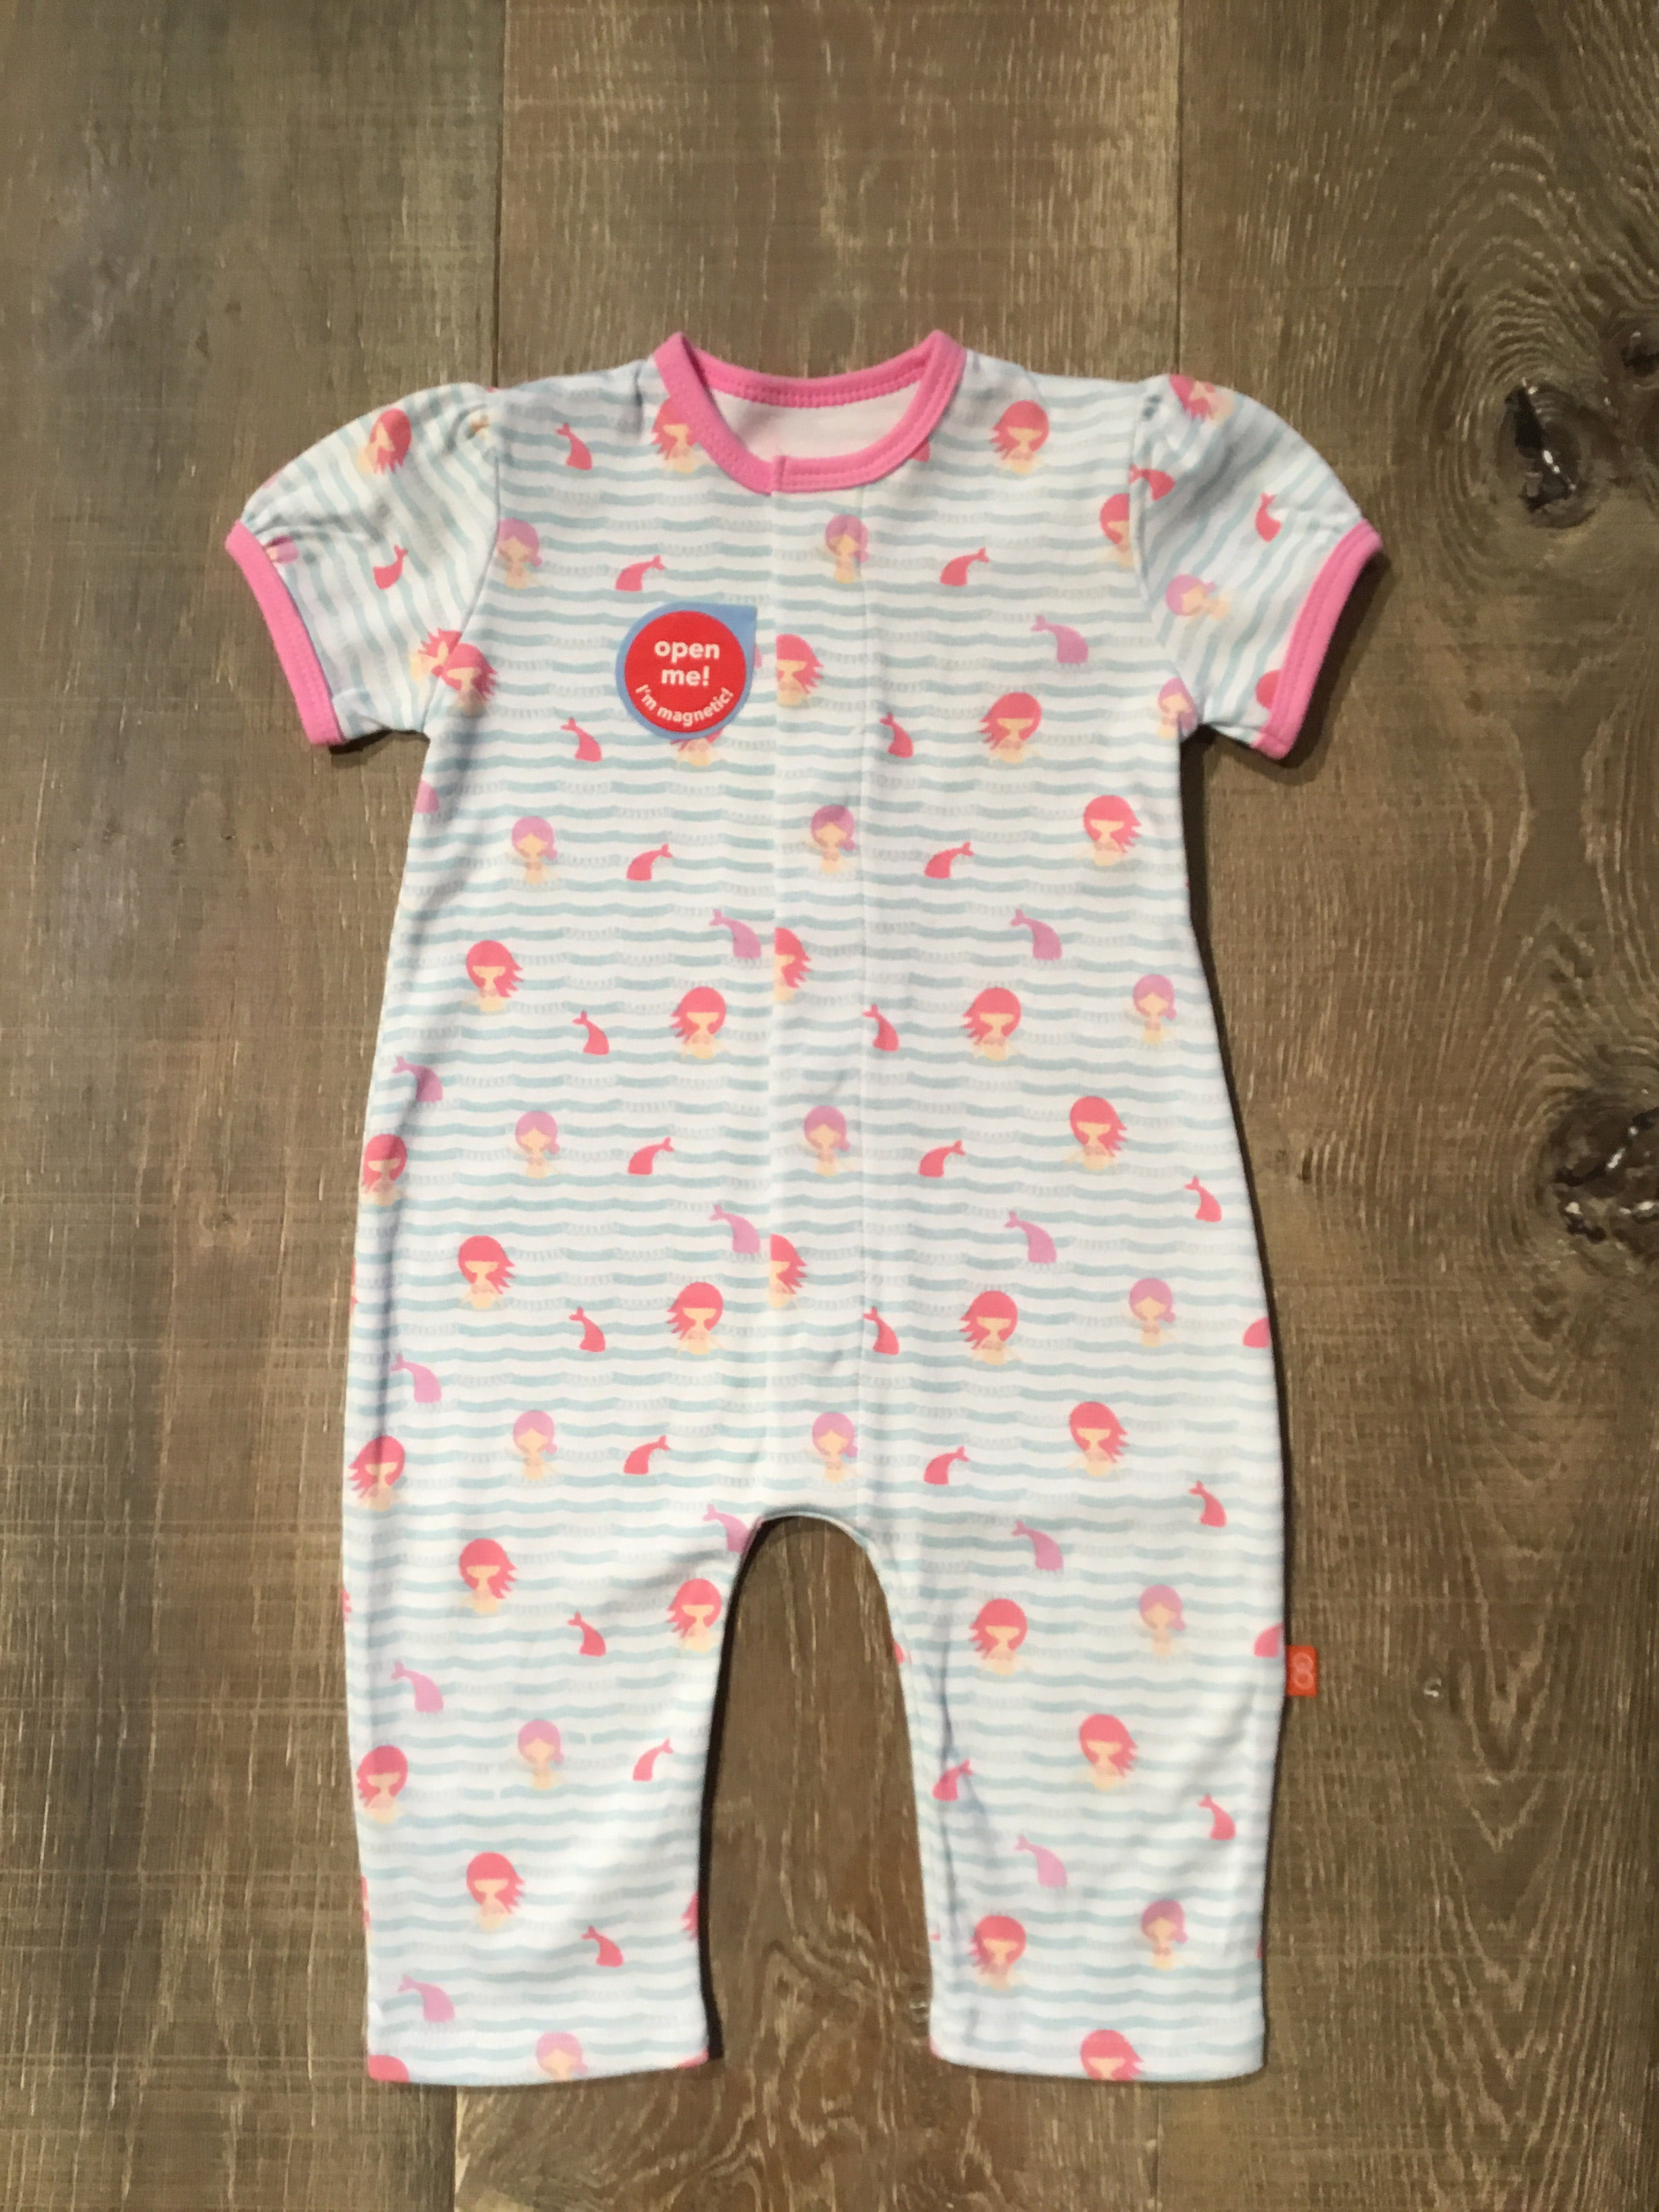 Siren Says Magnetic Union Suit – Bright Beginnings Boutique